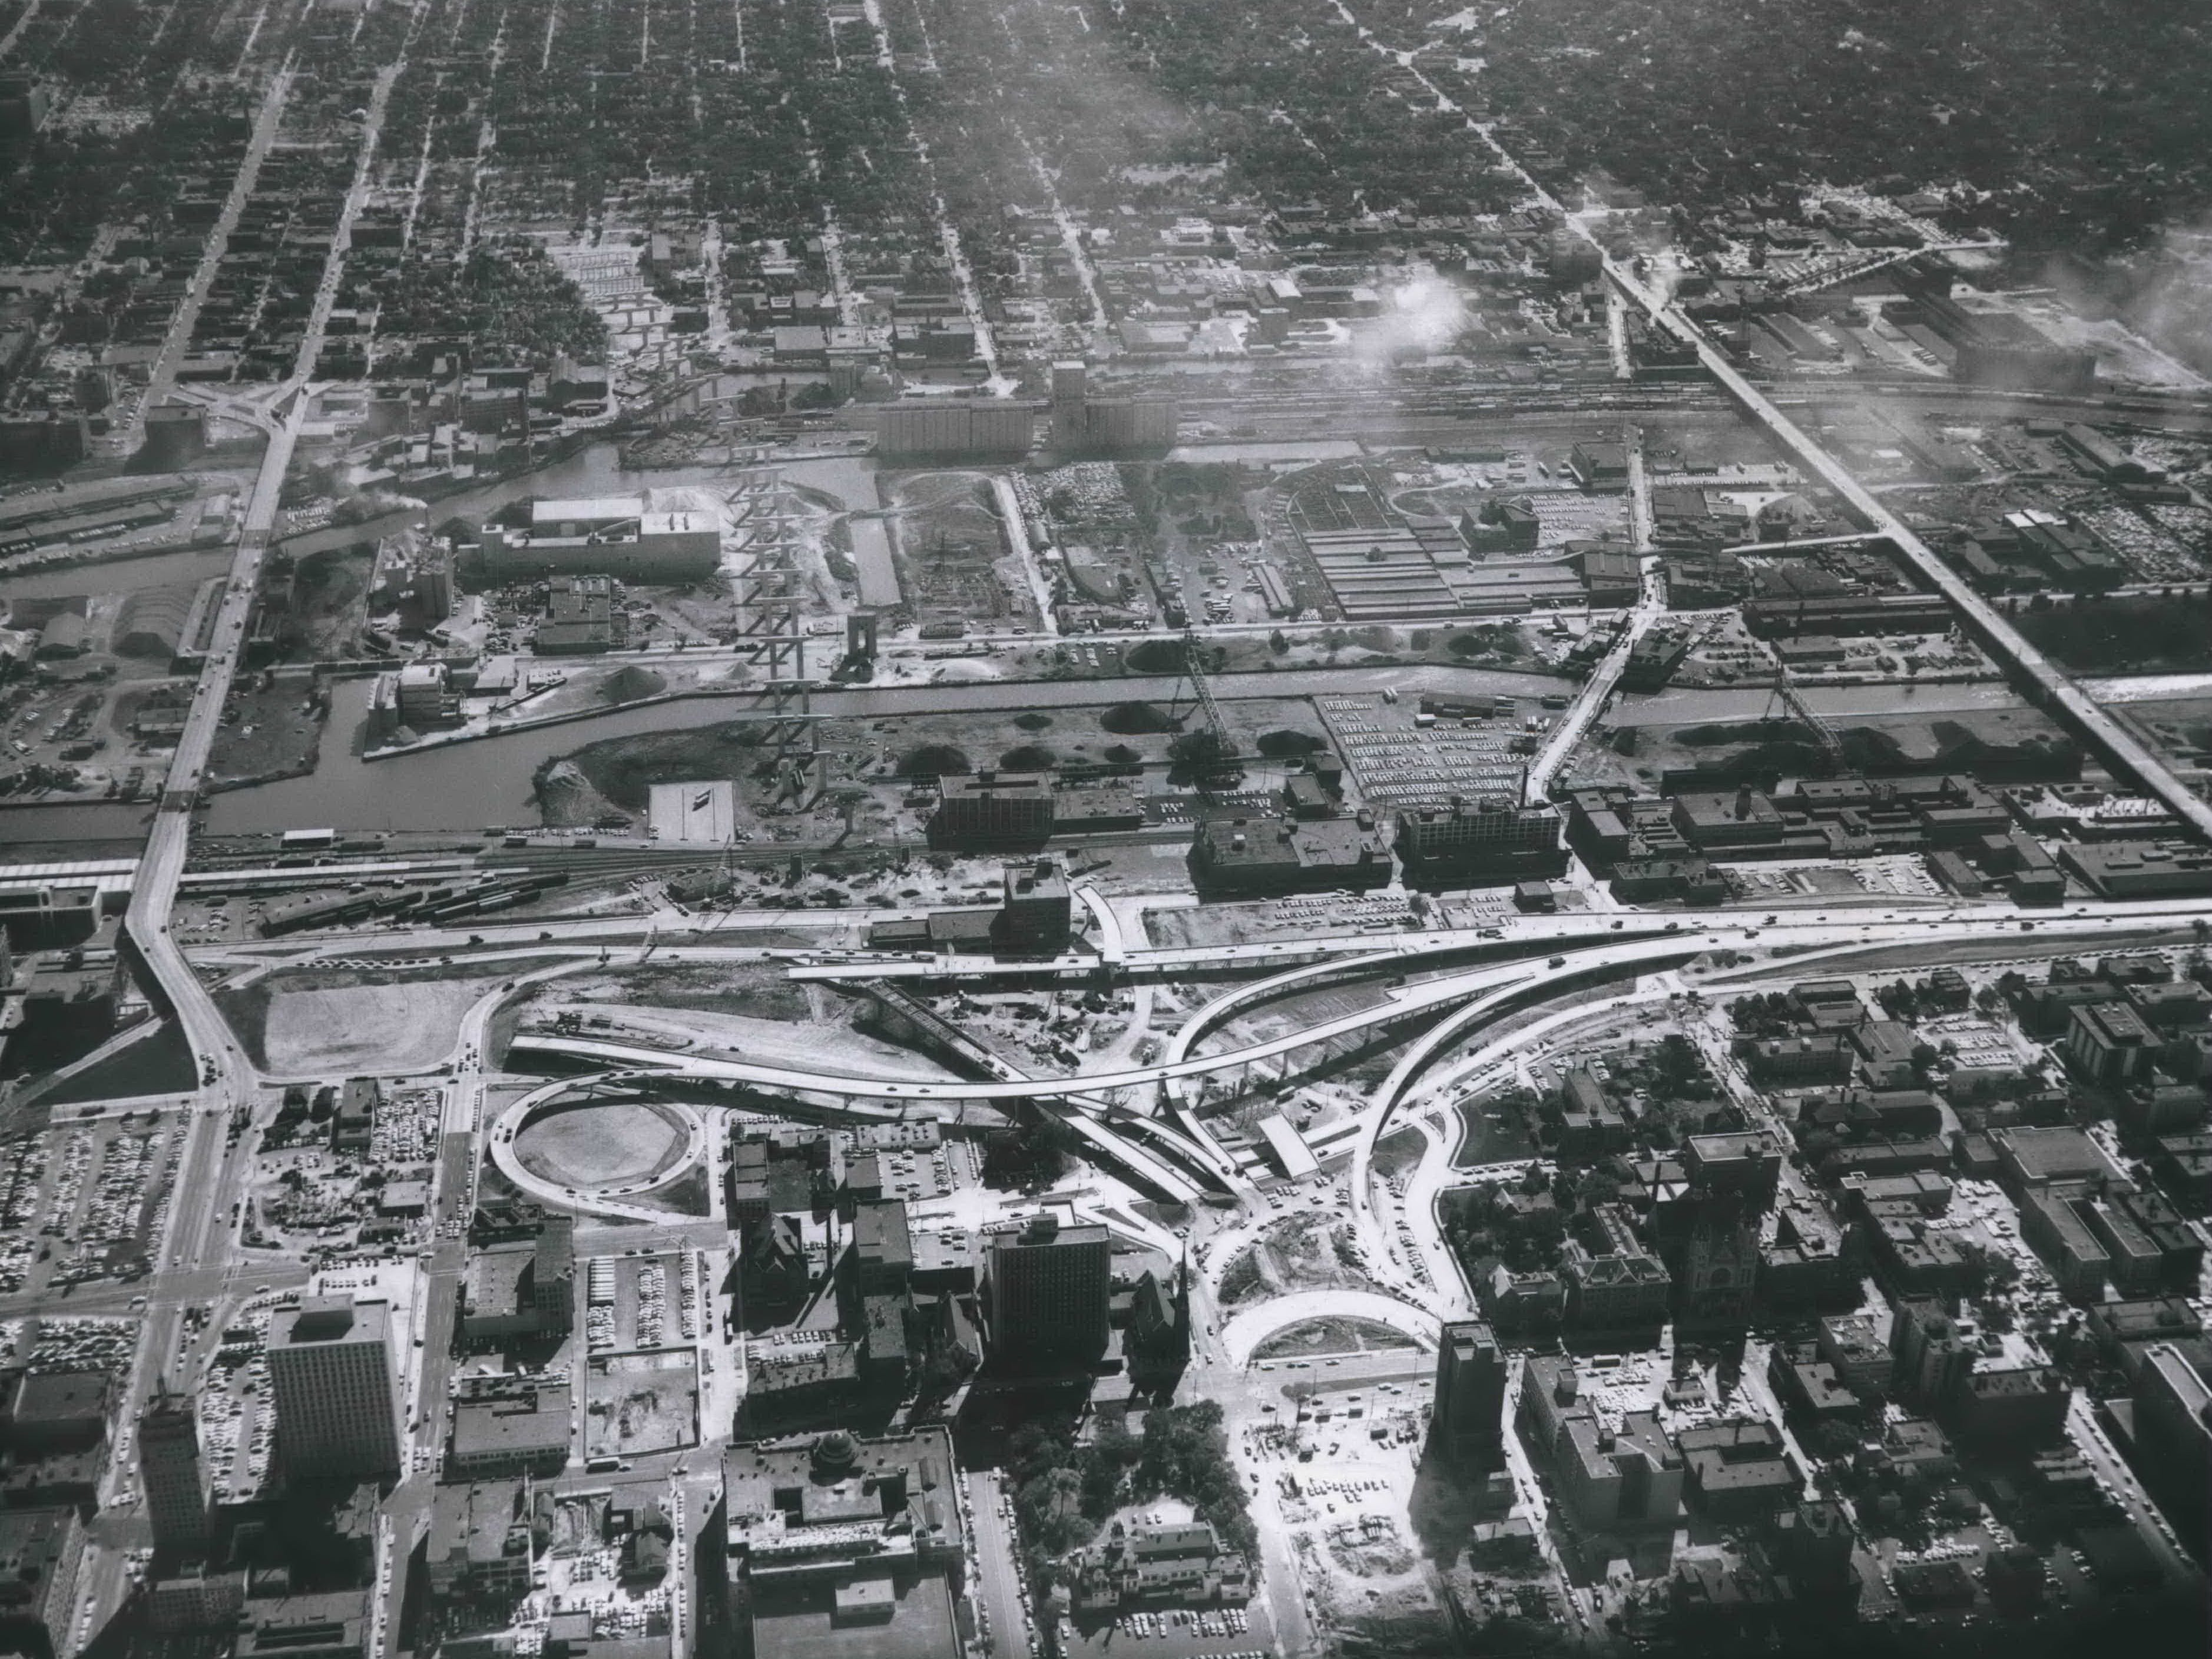 An aerial view of the Central Interchange (later the Marquette Interchange) in progress during the fall of 1966.